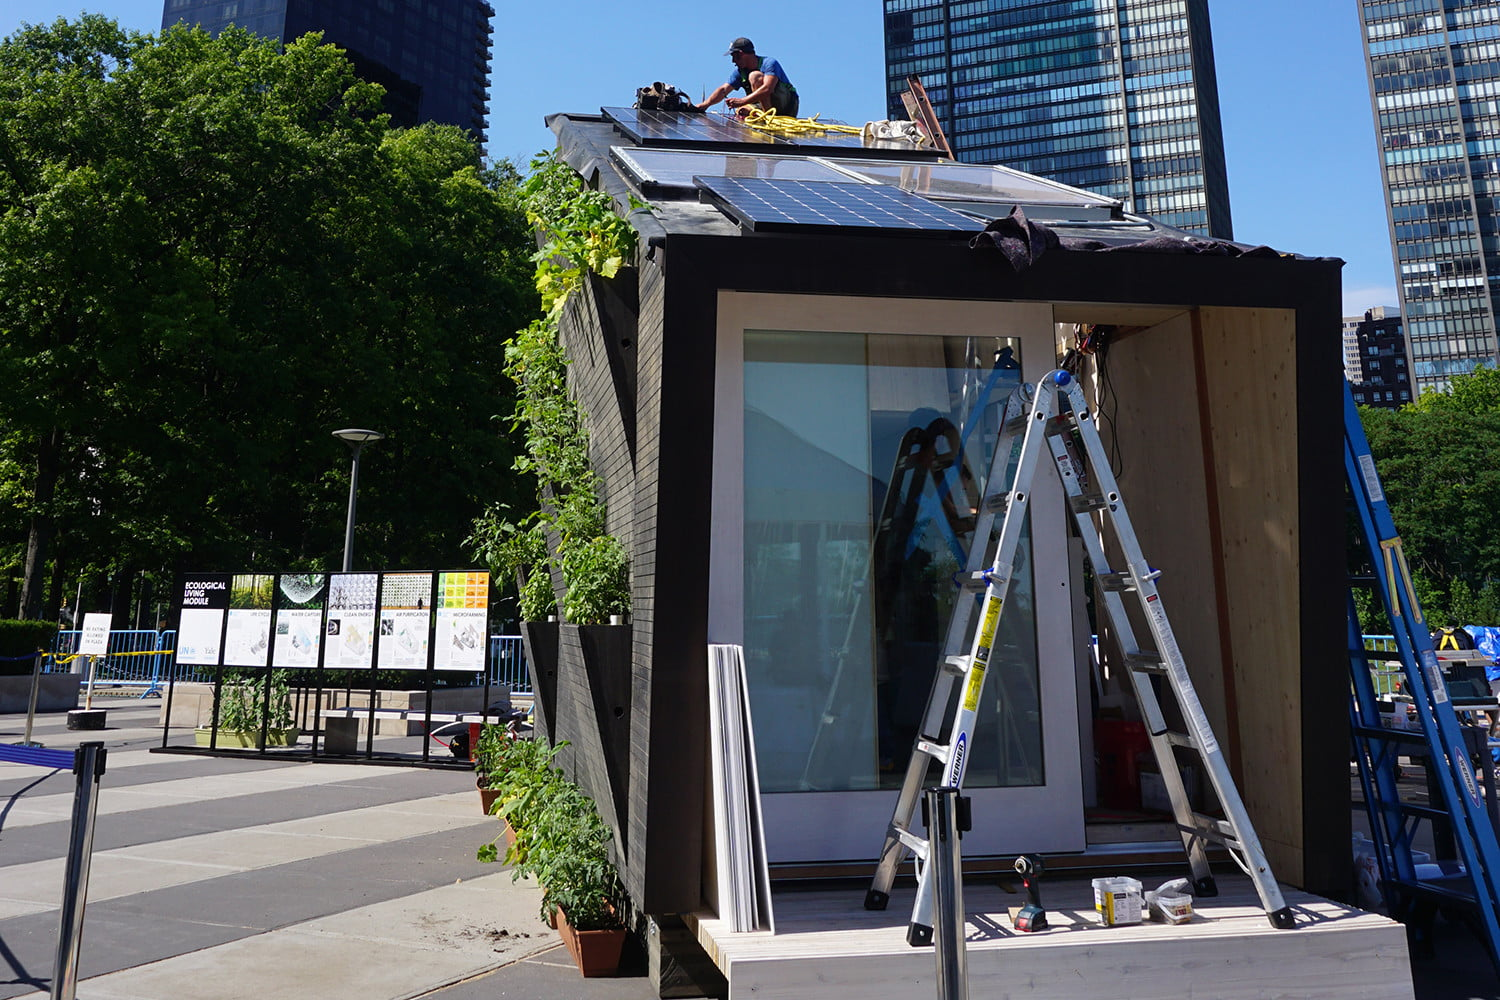 yale smart tiny houme of the future ecological living module